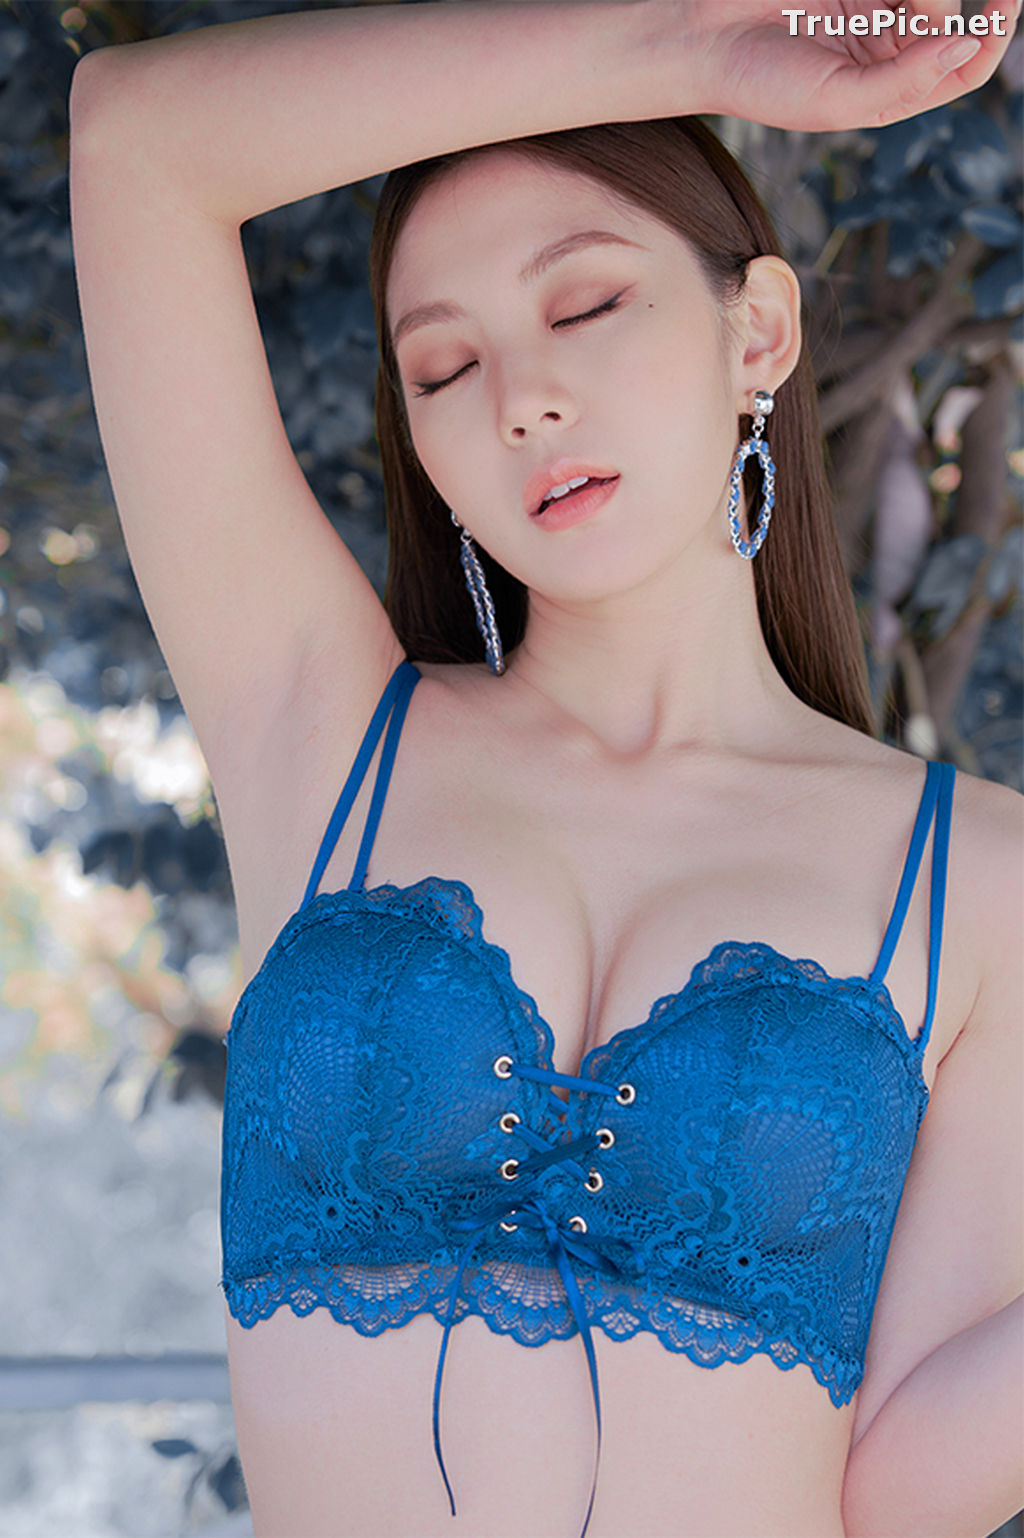 Image Korean Fashion Model – Lee Chae Eun (이채은) – Come On Vincent Lingerie #5 - TruePic.net - Picture-6